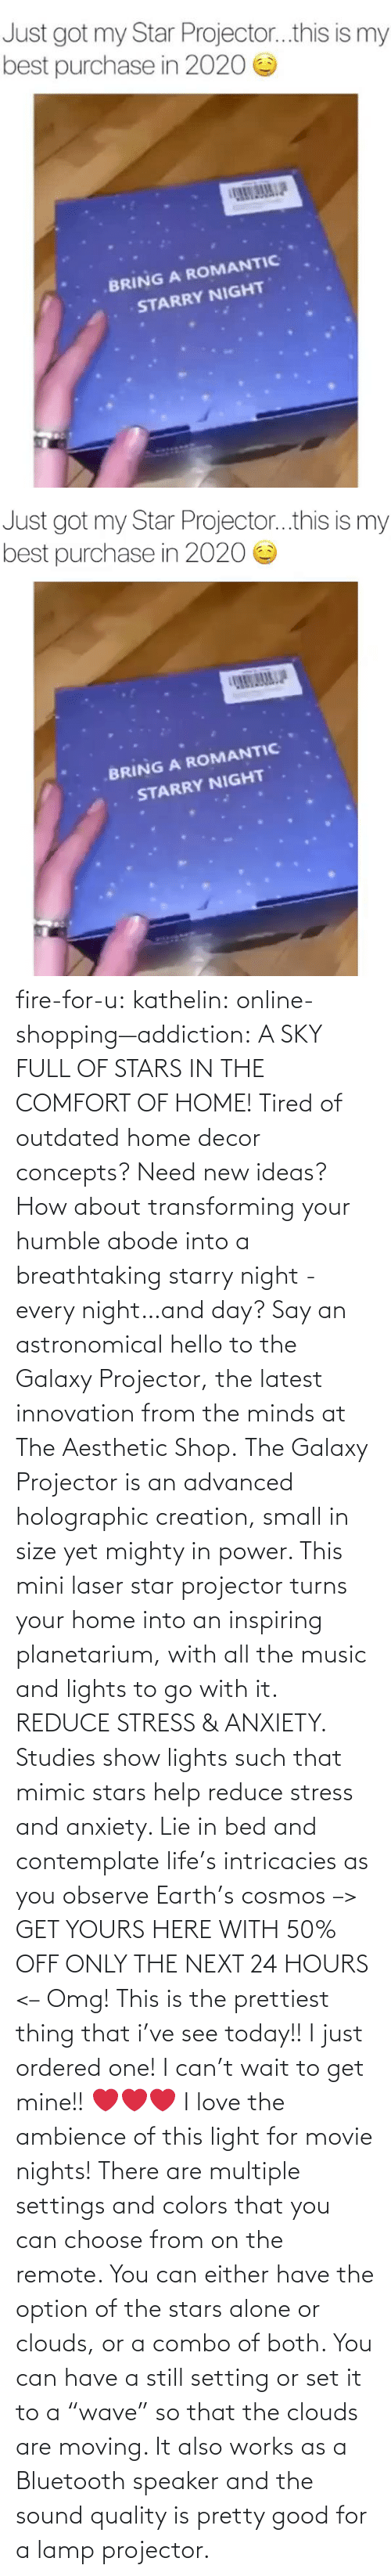 "Stars: fire-for-u:  kathelin: online-shopping—addiction:  A SKY FULL OF STARS IN THE COMFORT OF HOME! Tired of outdated home decor concepts? Need new ideas? How about transforming your humble abode into a breathtaking starry night - every night…and day? Say an astronomical hello to the Galaxy Projector, the latest innovation from the minds at The Aesthetic Shop. The Galaxy Projector is an advanced holographic creation, small in size yet mighty in power. This mini laser star projector turns your home into an inspiring planetarium, with all the music and lights to go with it. REDUCE STRESS & ANXIETY. Studies show lights such that mimic stars help reduce stress and anxiety. Lie in bed and contemplate life's intricacies as you observe Earth's cosmos  –> GET YOURS HERE WITH 50% OFF ONLY THE NEXT 24 HOURS <–   Omg! This is the prettiest thing that i've see today!! I just ordered one! I can't wait to get mine!! ❤️️❤️️❤️️  I love the ambience of this light for movie nights! There are multiple settings and colors that you can choose from on the remote. You can either have the option of the stars alone or clouds, or a combo of both. You can have a still setting or set it to a ""wave"" so that the clouds are moving. It also works as a Bluetooth speaker and the sound quality is pretty good for a lamp projector."